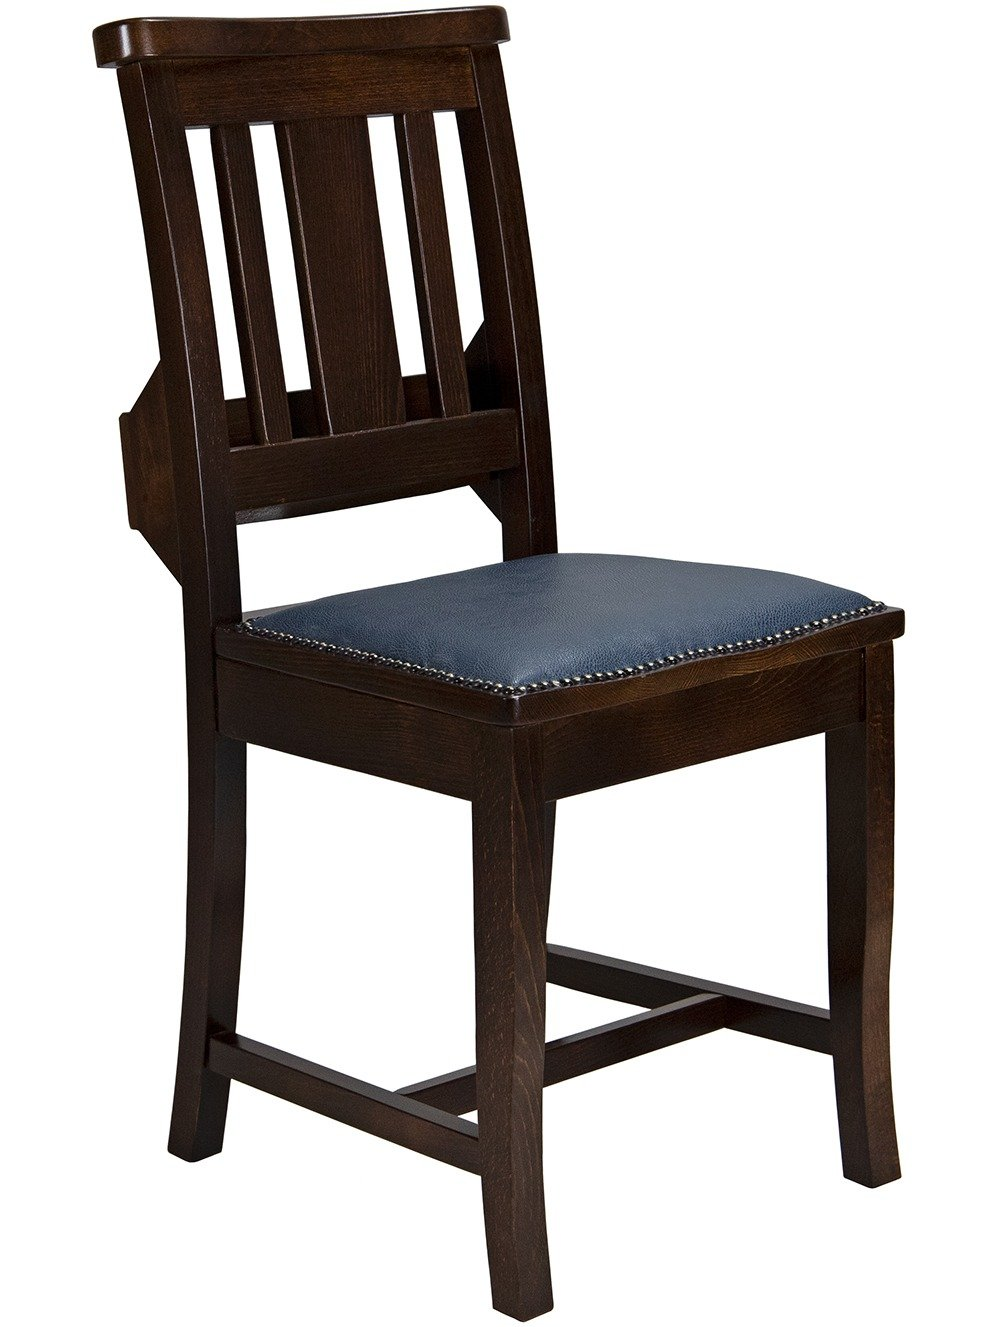 Jospeh Church Side Chair